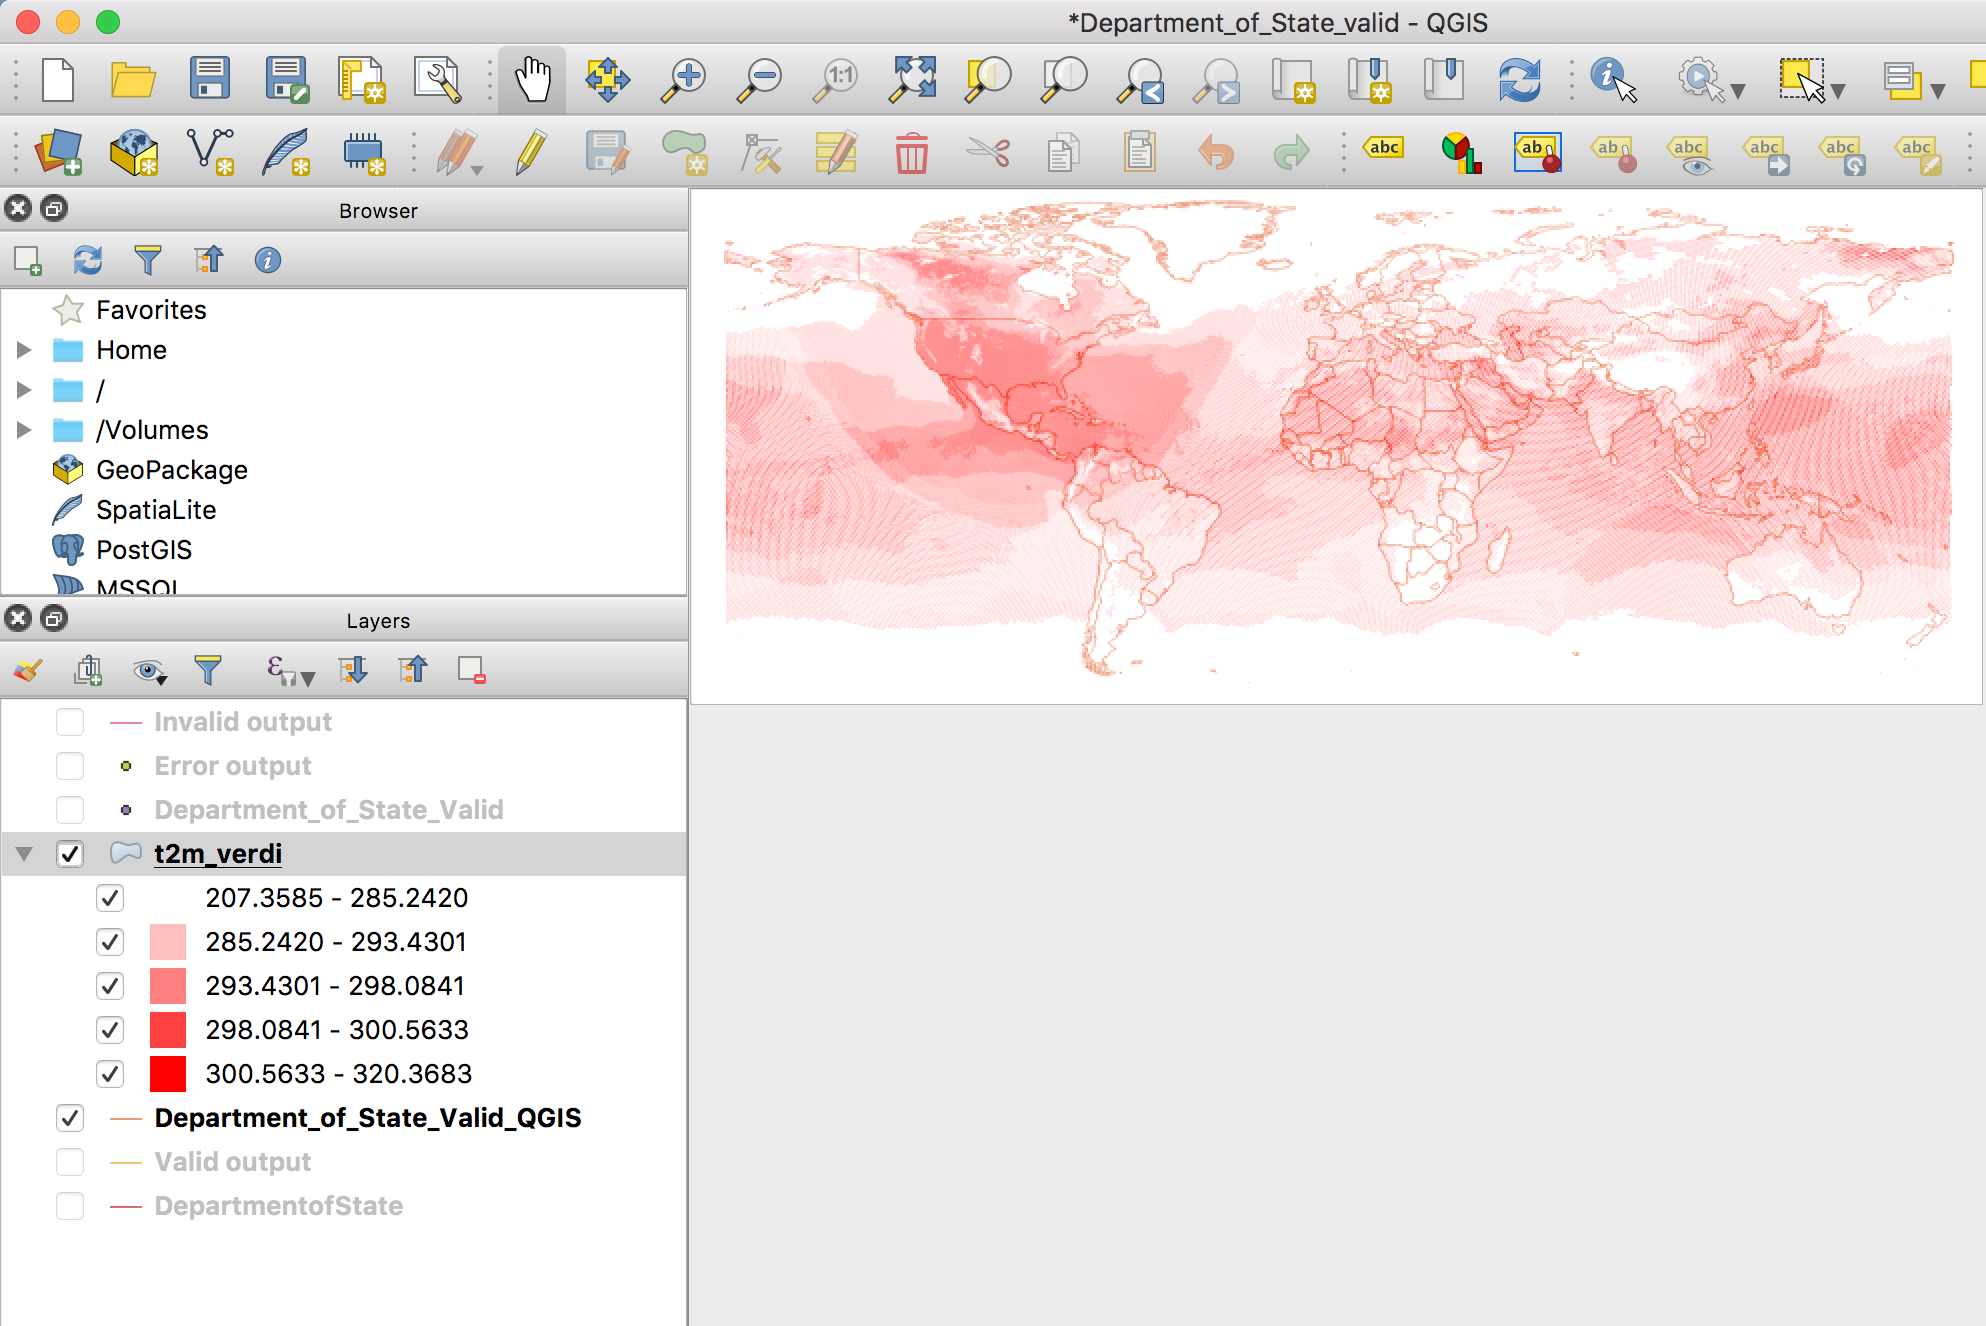 tested Shapefile Export using MPAS tileplot - export image